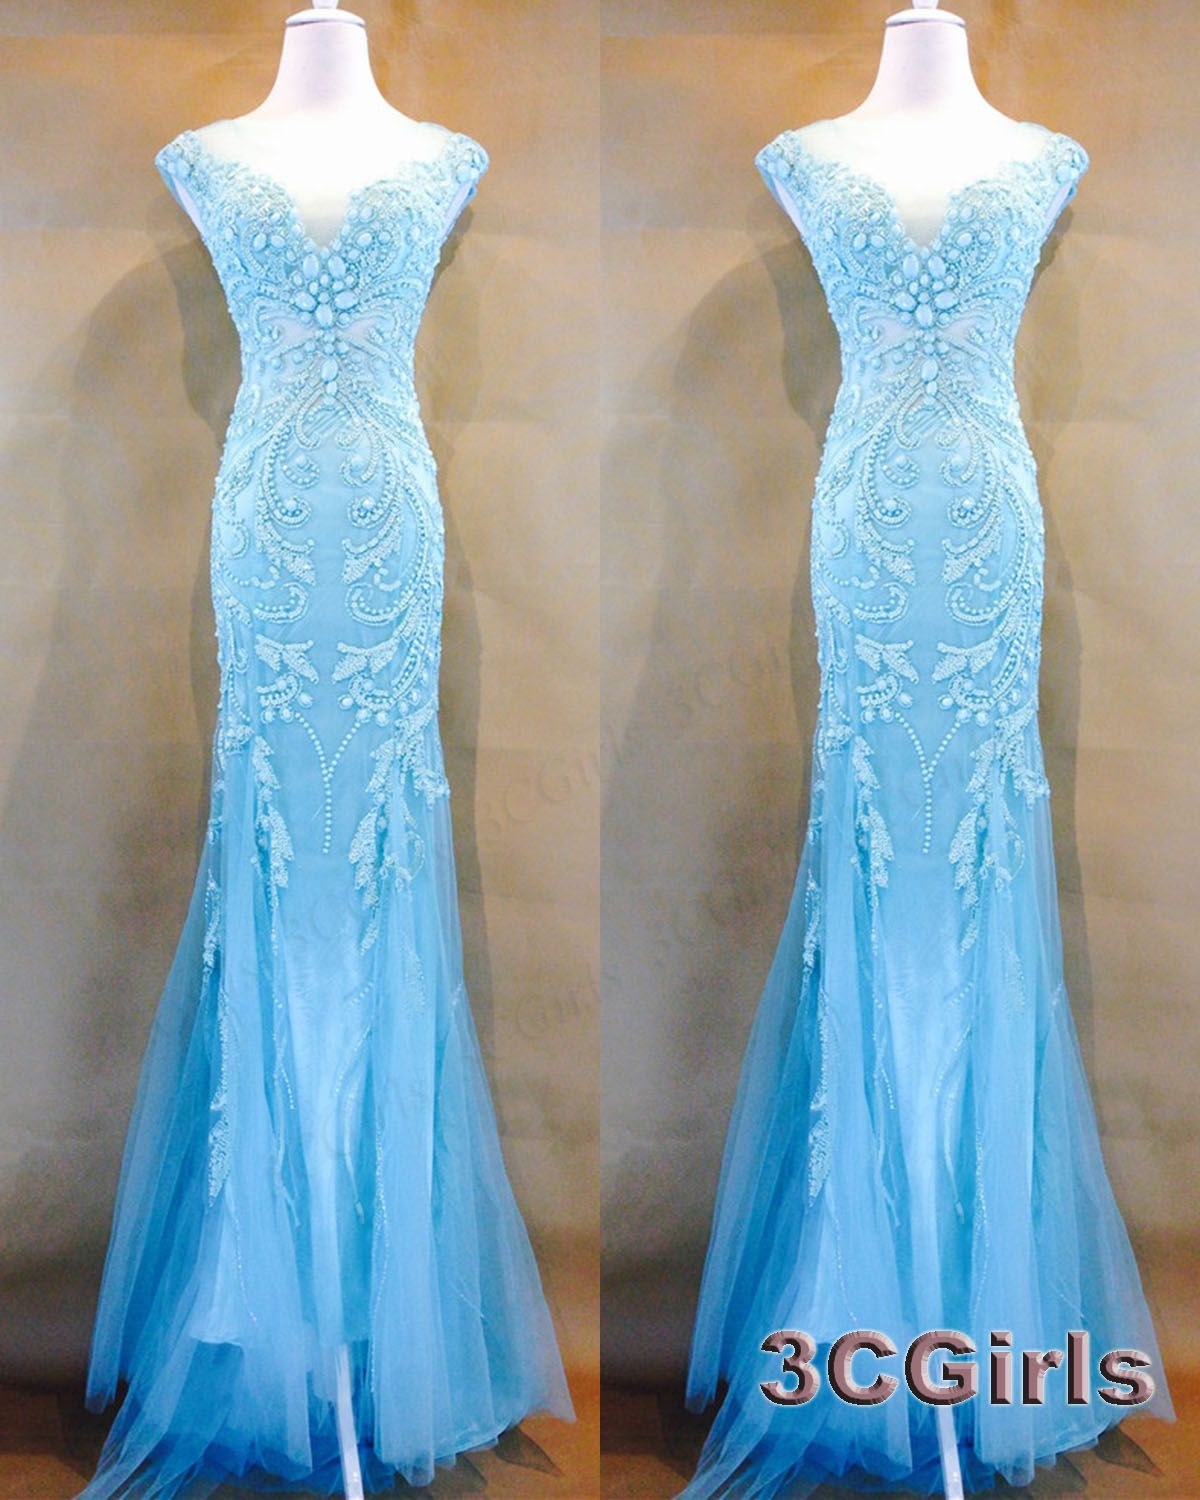 Unqiue teal prom dresses long vneck ball gown stunning ice